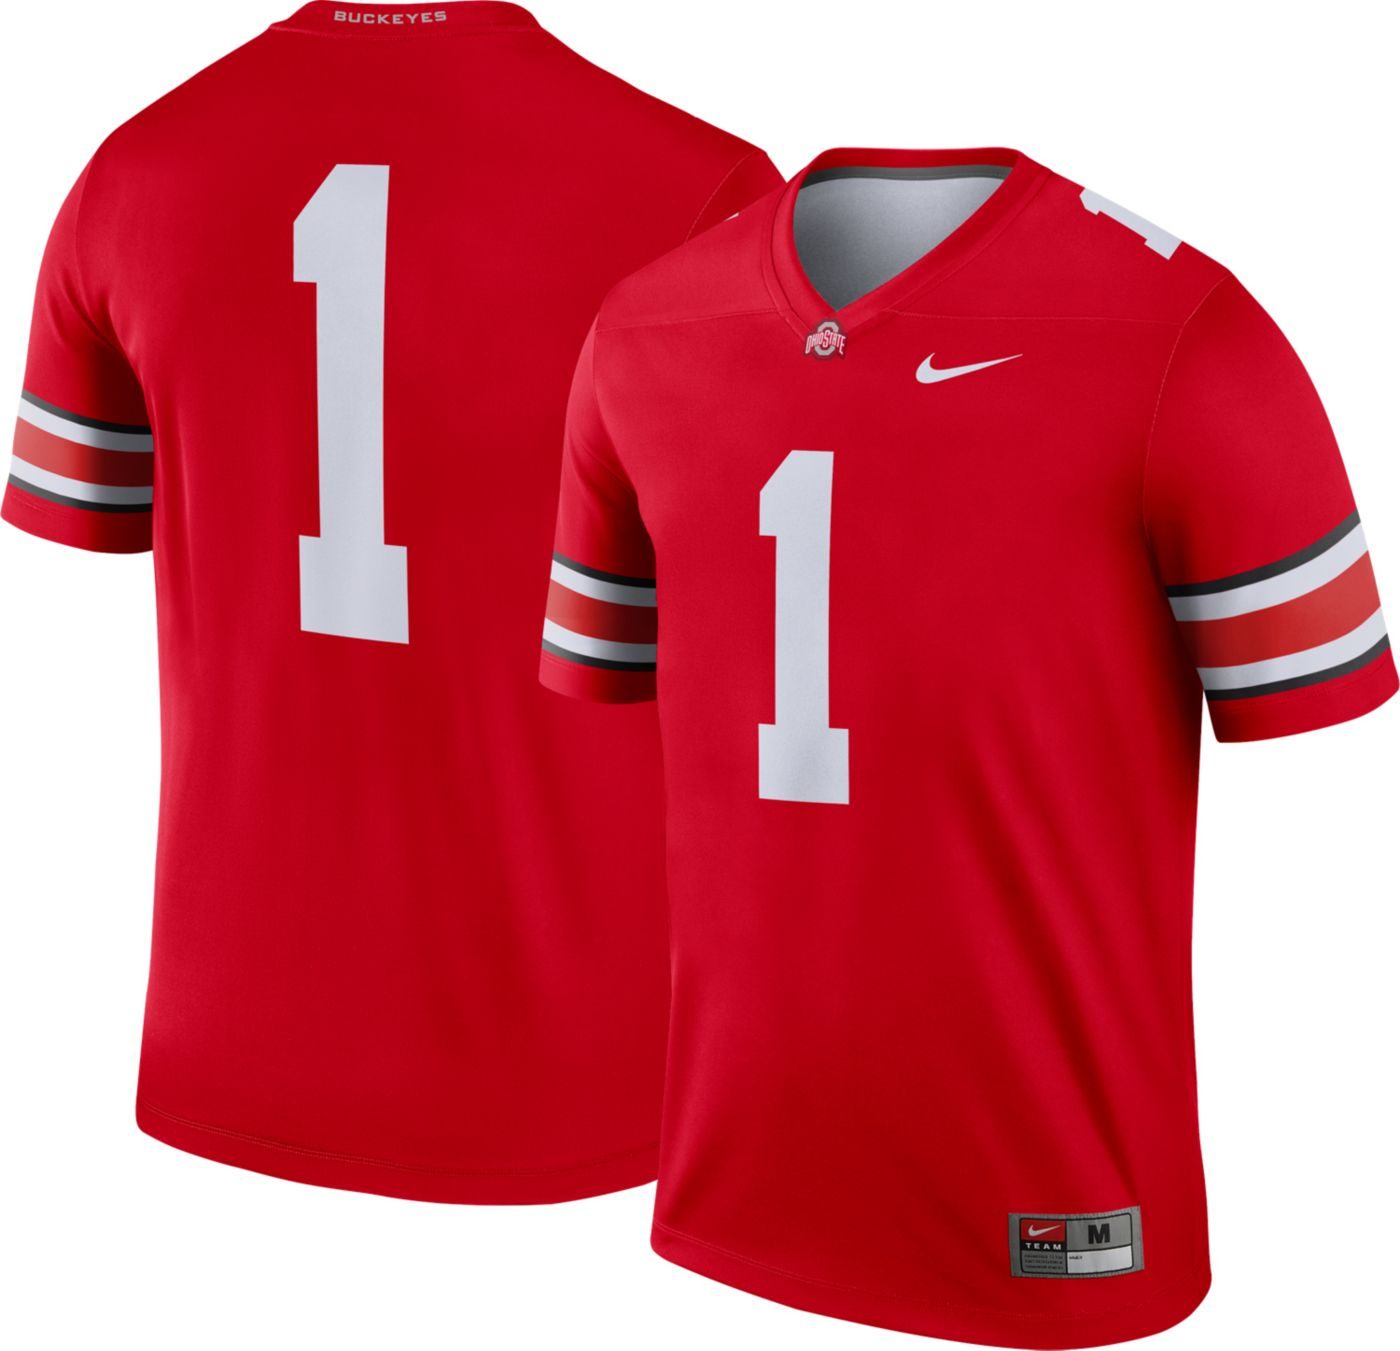 Nike Men's Ohio State Buckeyes #1 Scarlet Dri-FIT Legend Football Jersey